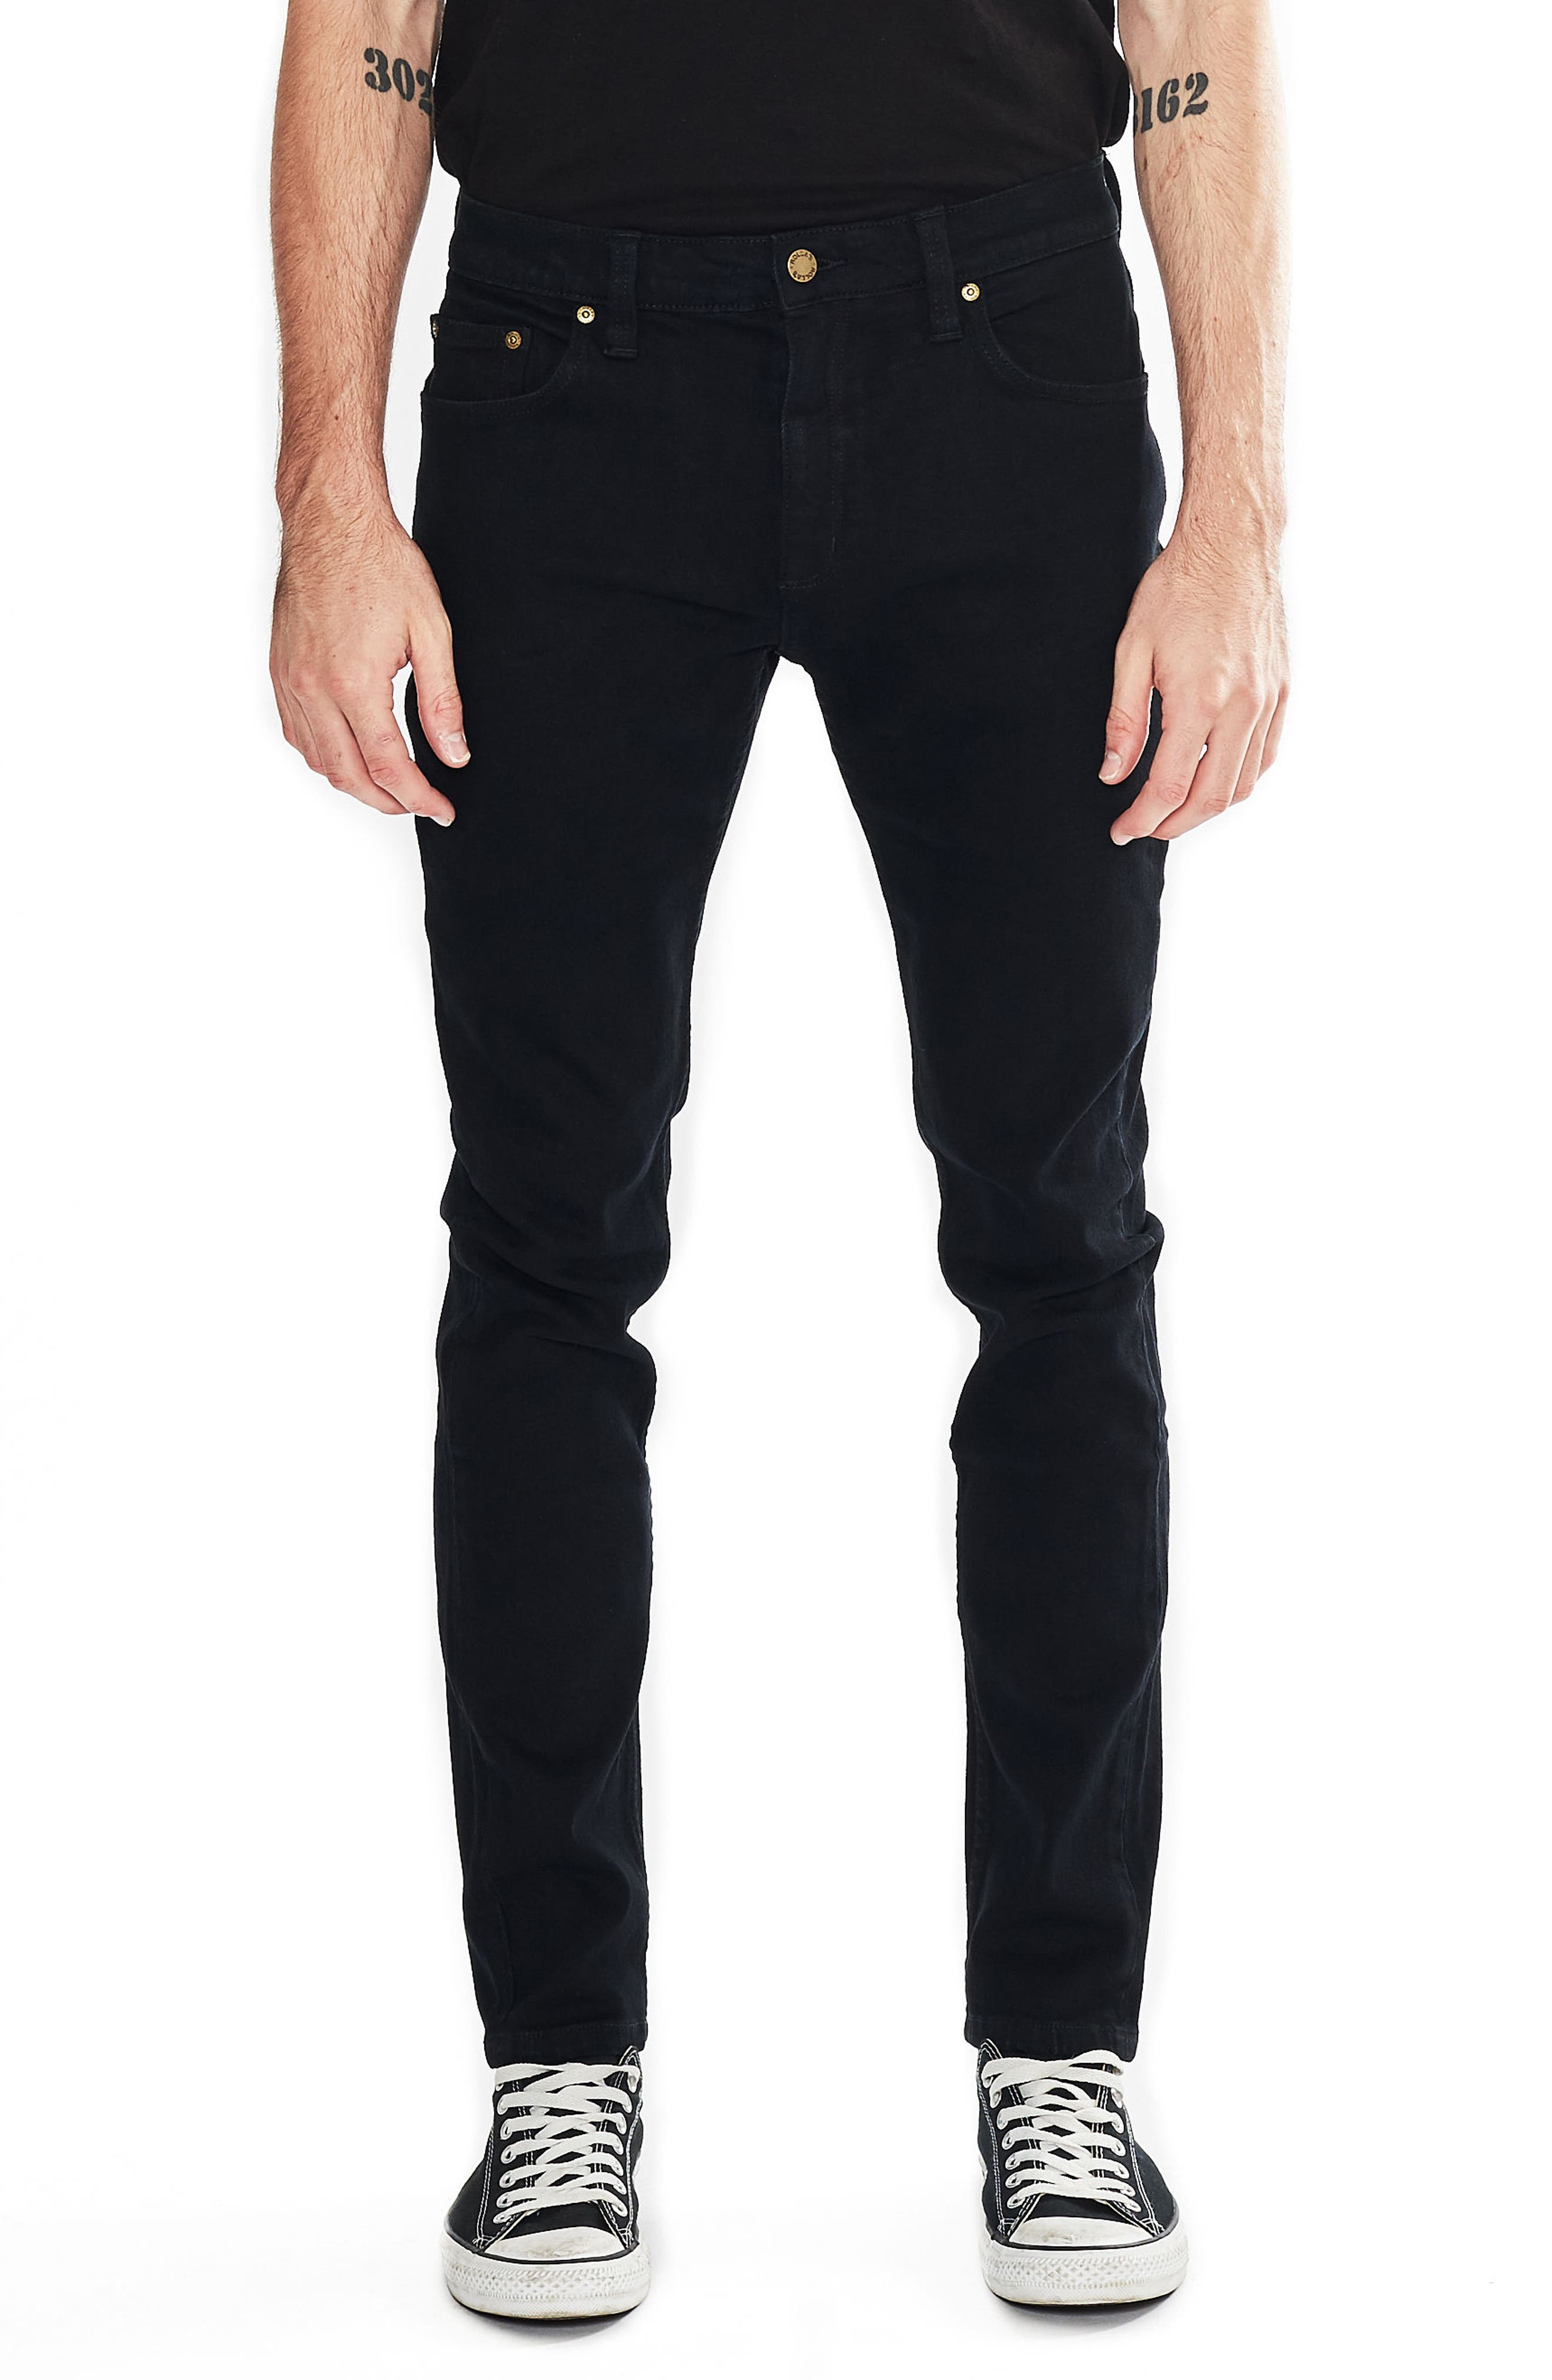 ROLLA'S Thin Captain Slim Fit Jeans (Bon Black)